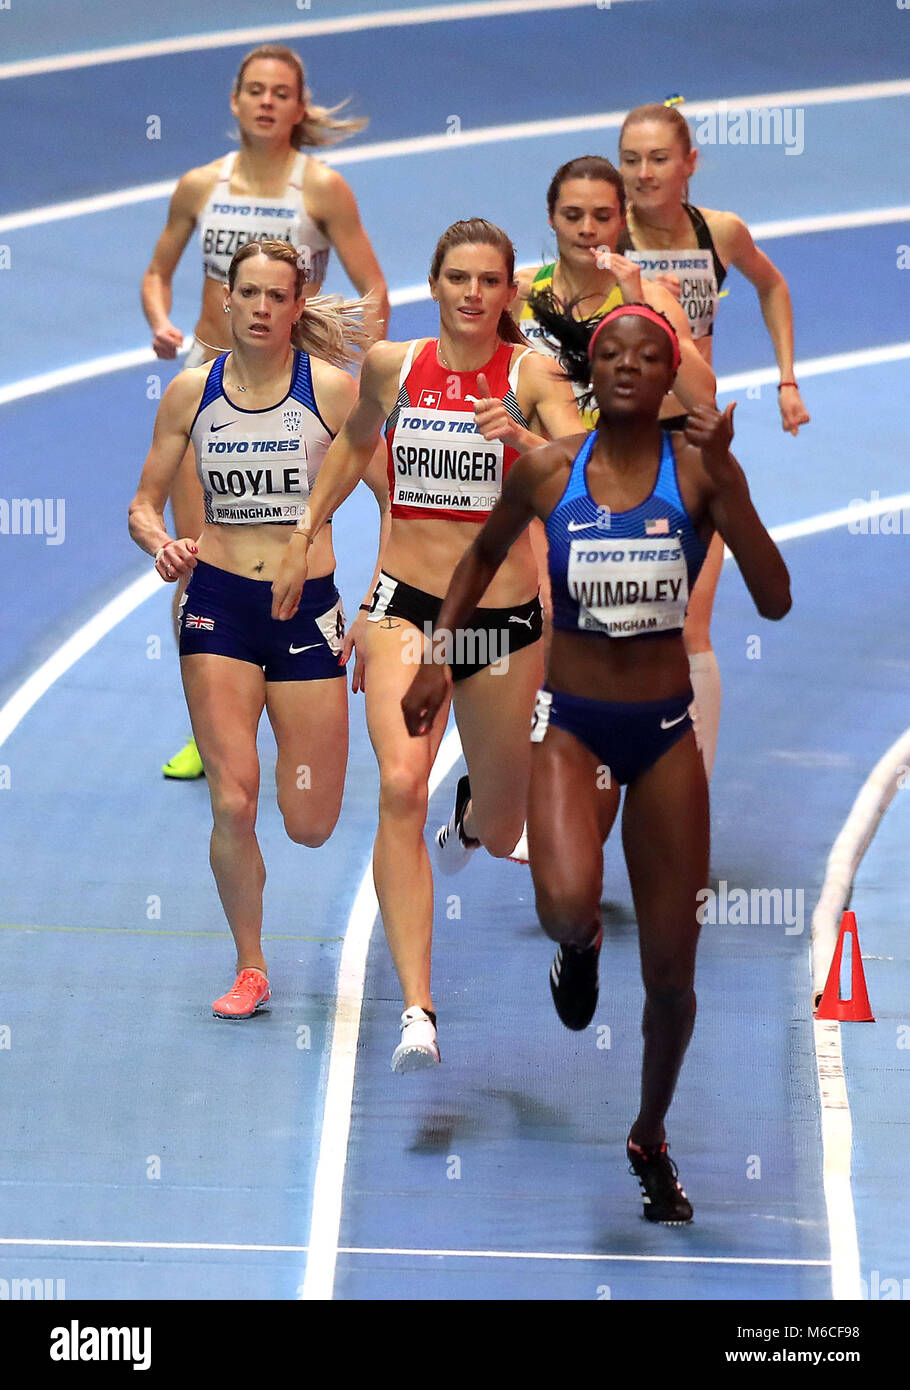 Great Britain's Eilidh Doyle (left) on her way to finishing second in the Women's 400m Semi Final behind - Stock Image